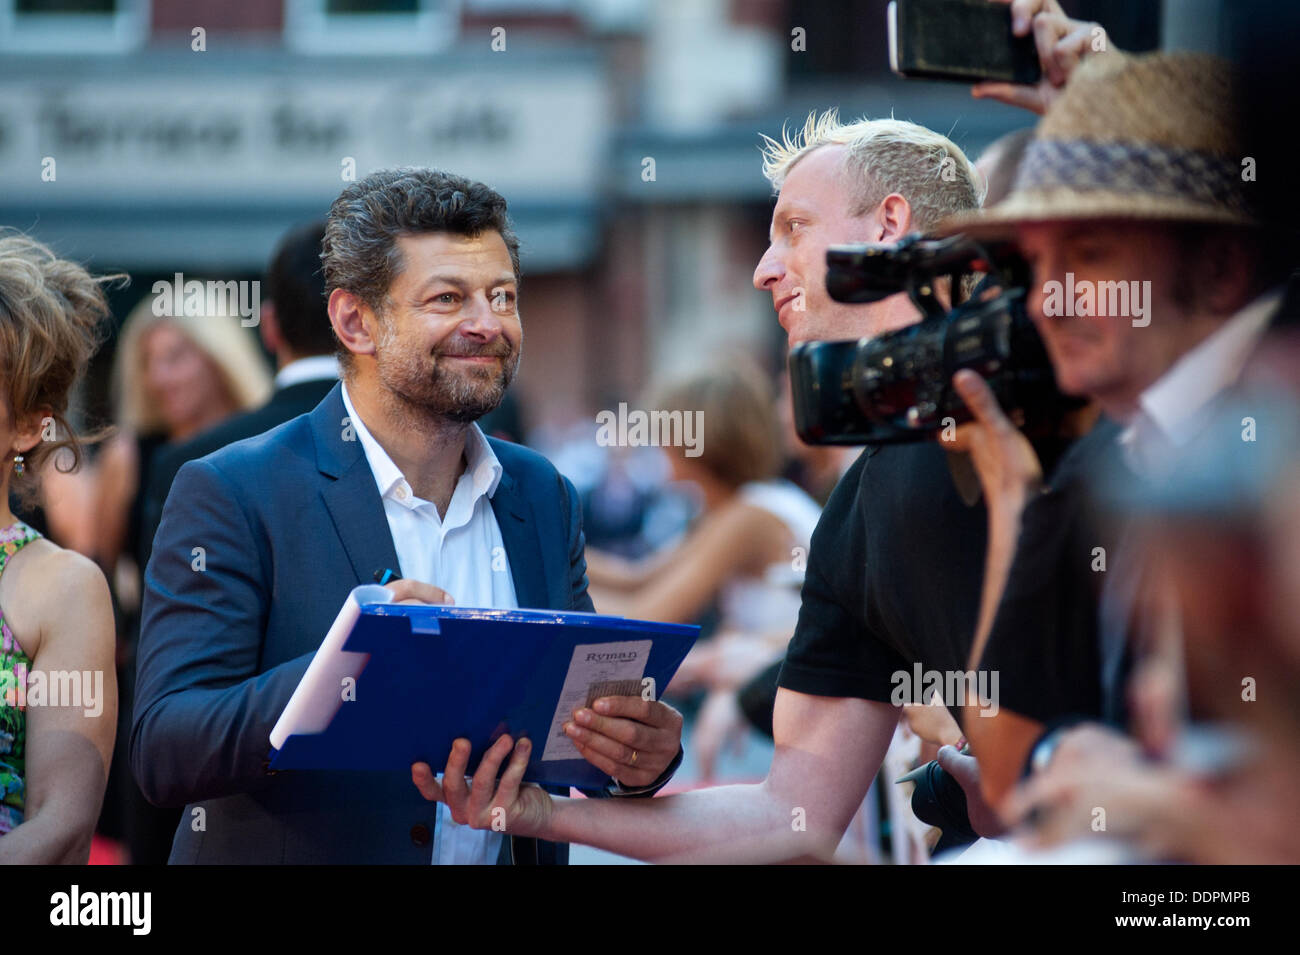 London, UK - 5 September 2013: Andy Serkis signs autographs at the Diana world premiere at the Odeon Cinema in Leicester - Stock Image